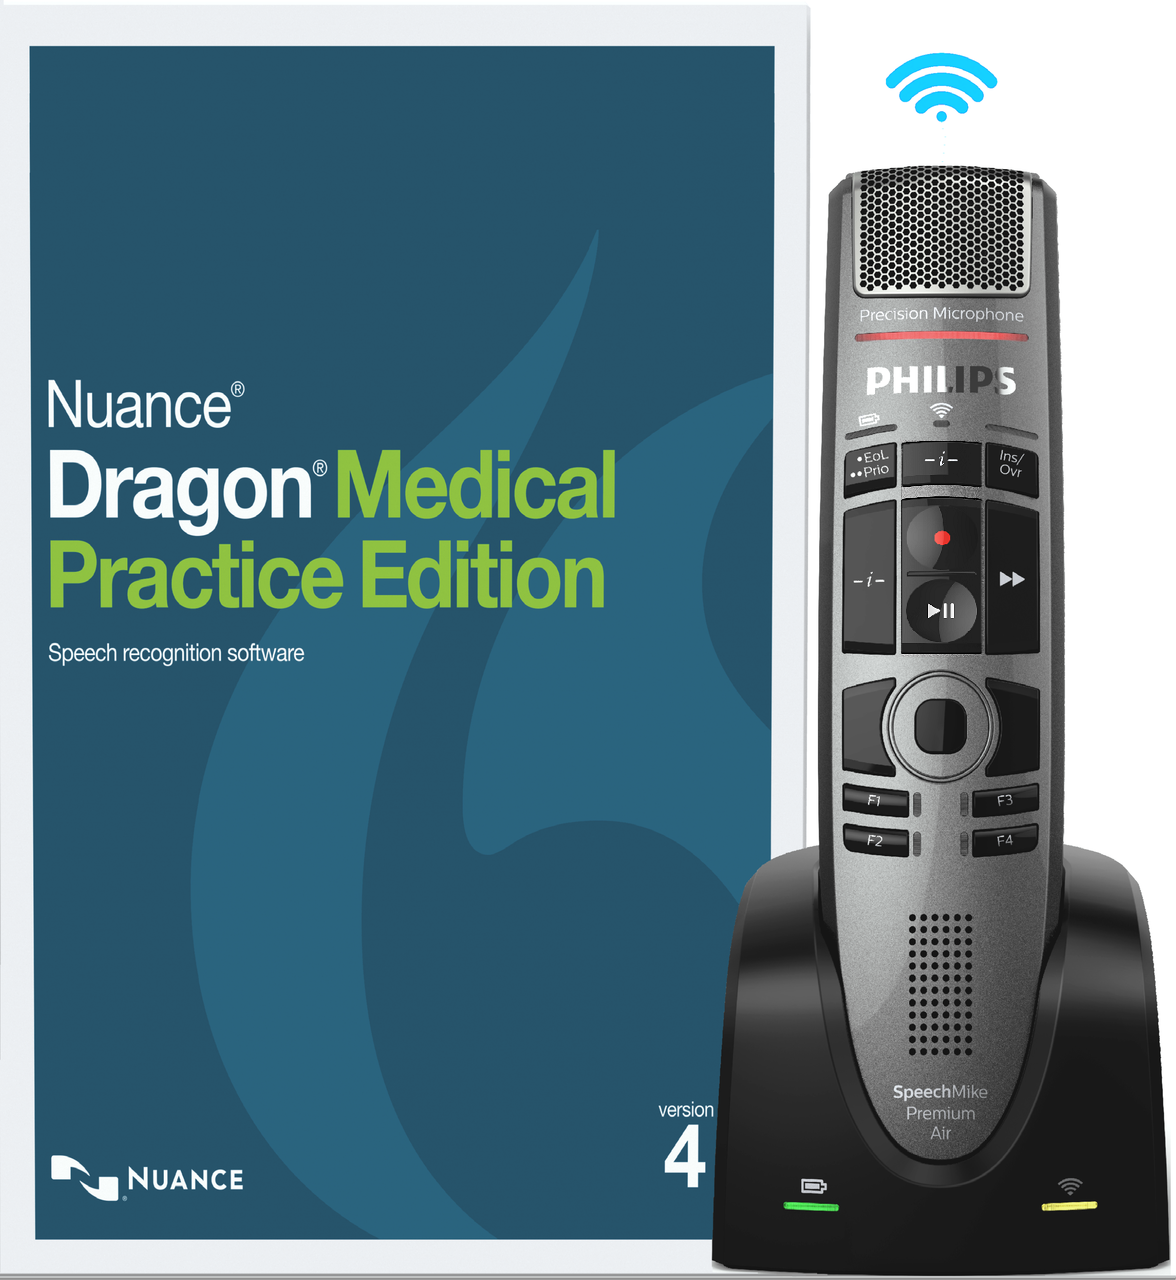 Nuance® Dragon® Medical Practice Edition 4 with Philips